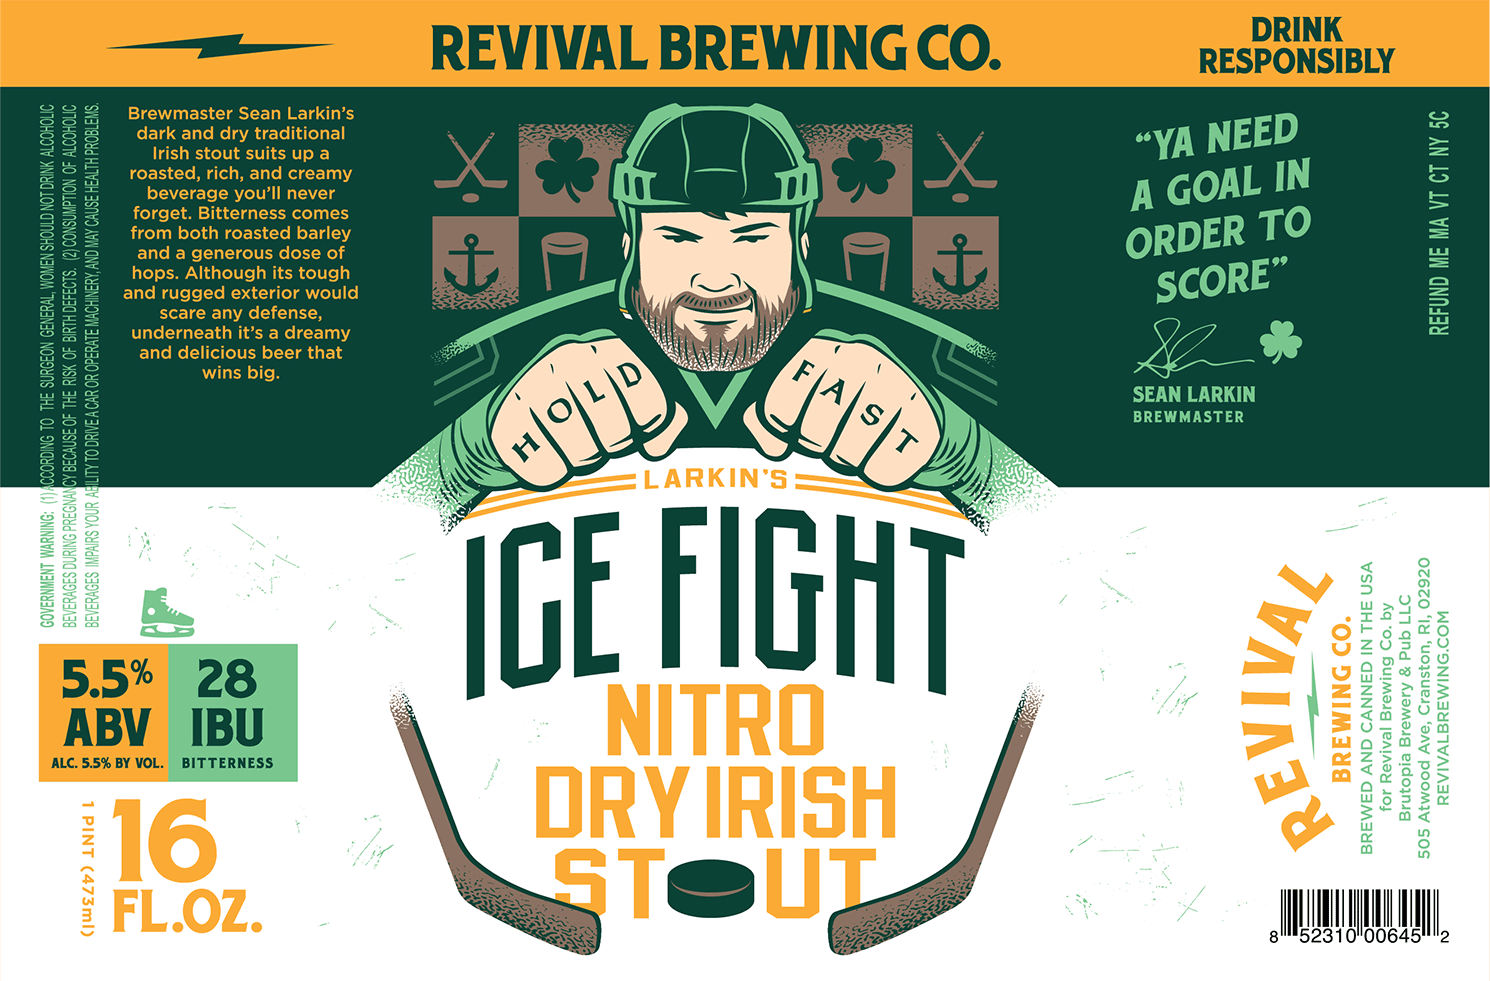 Revival Brewing Company Larkin's Ice Fight Nitro Dry Irish Stout